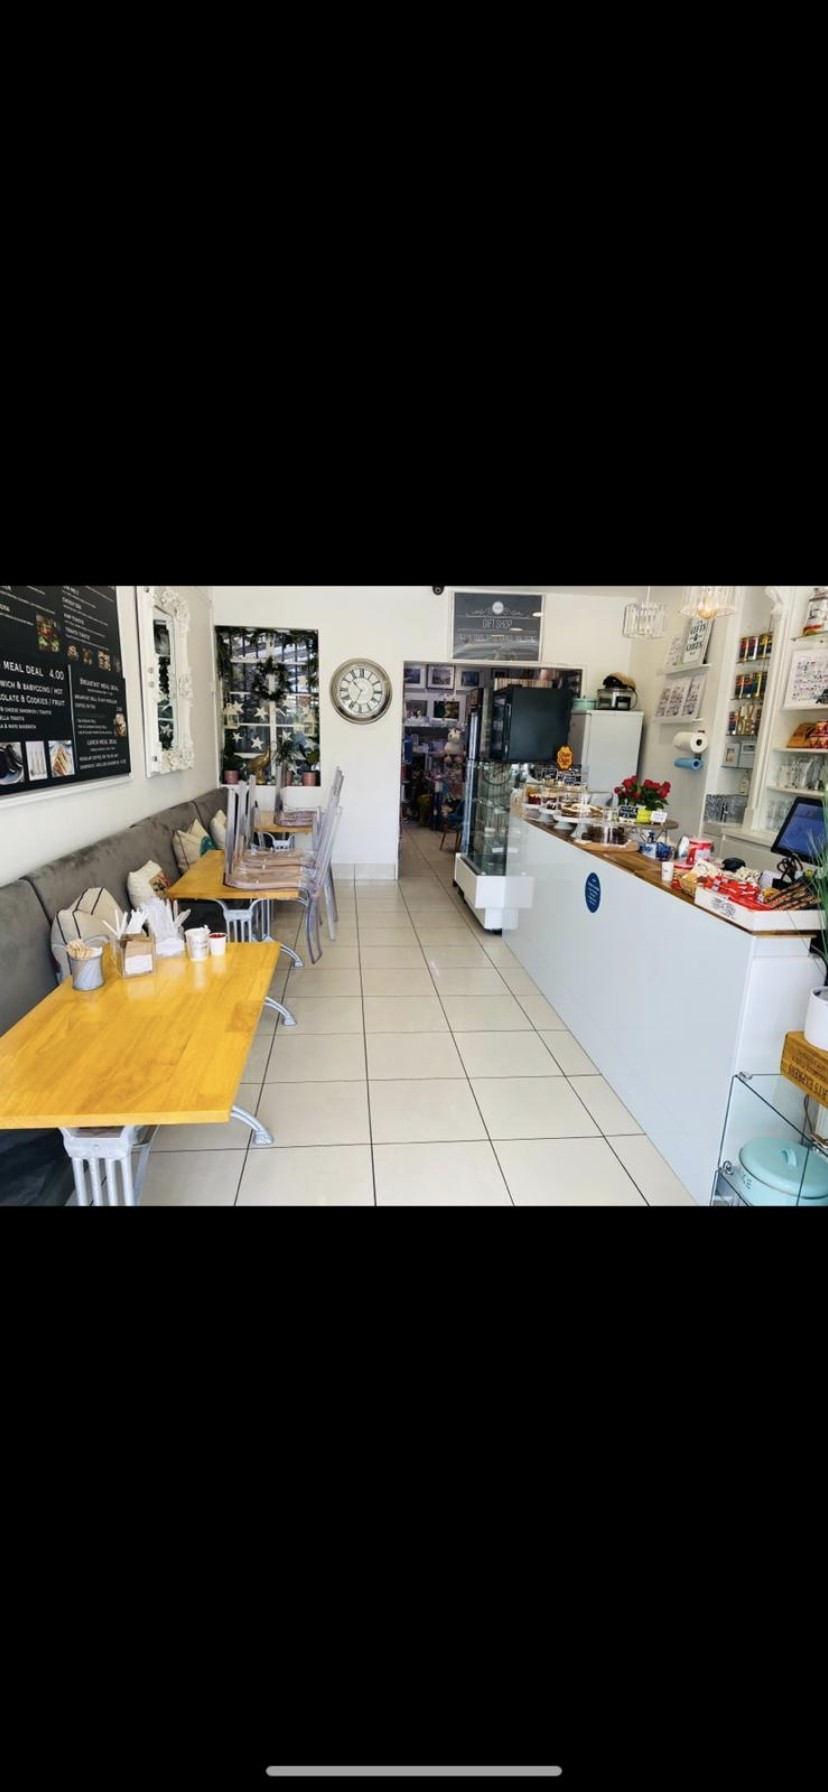 Cafe/Gifts shop in London - Image 4